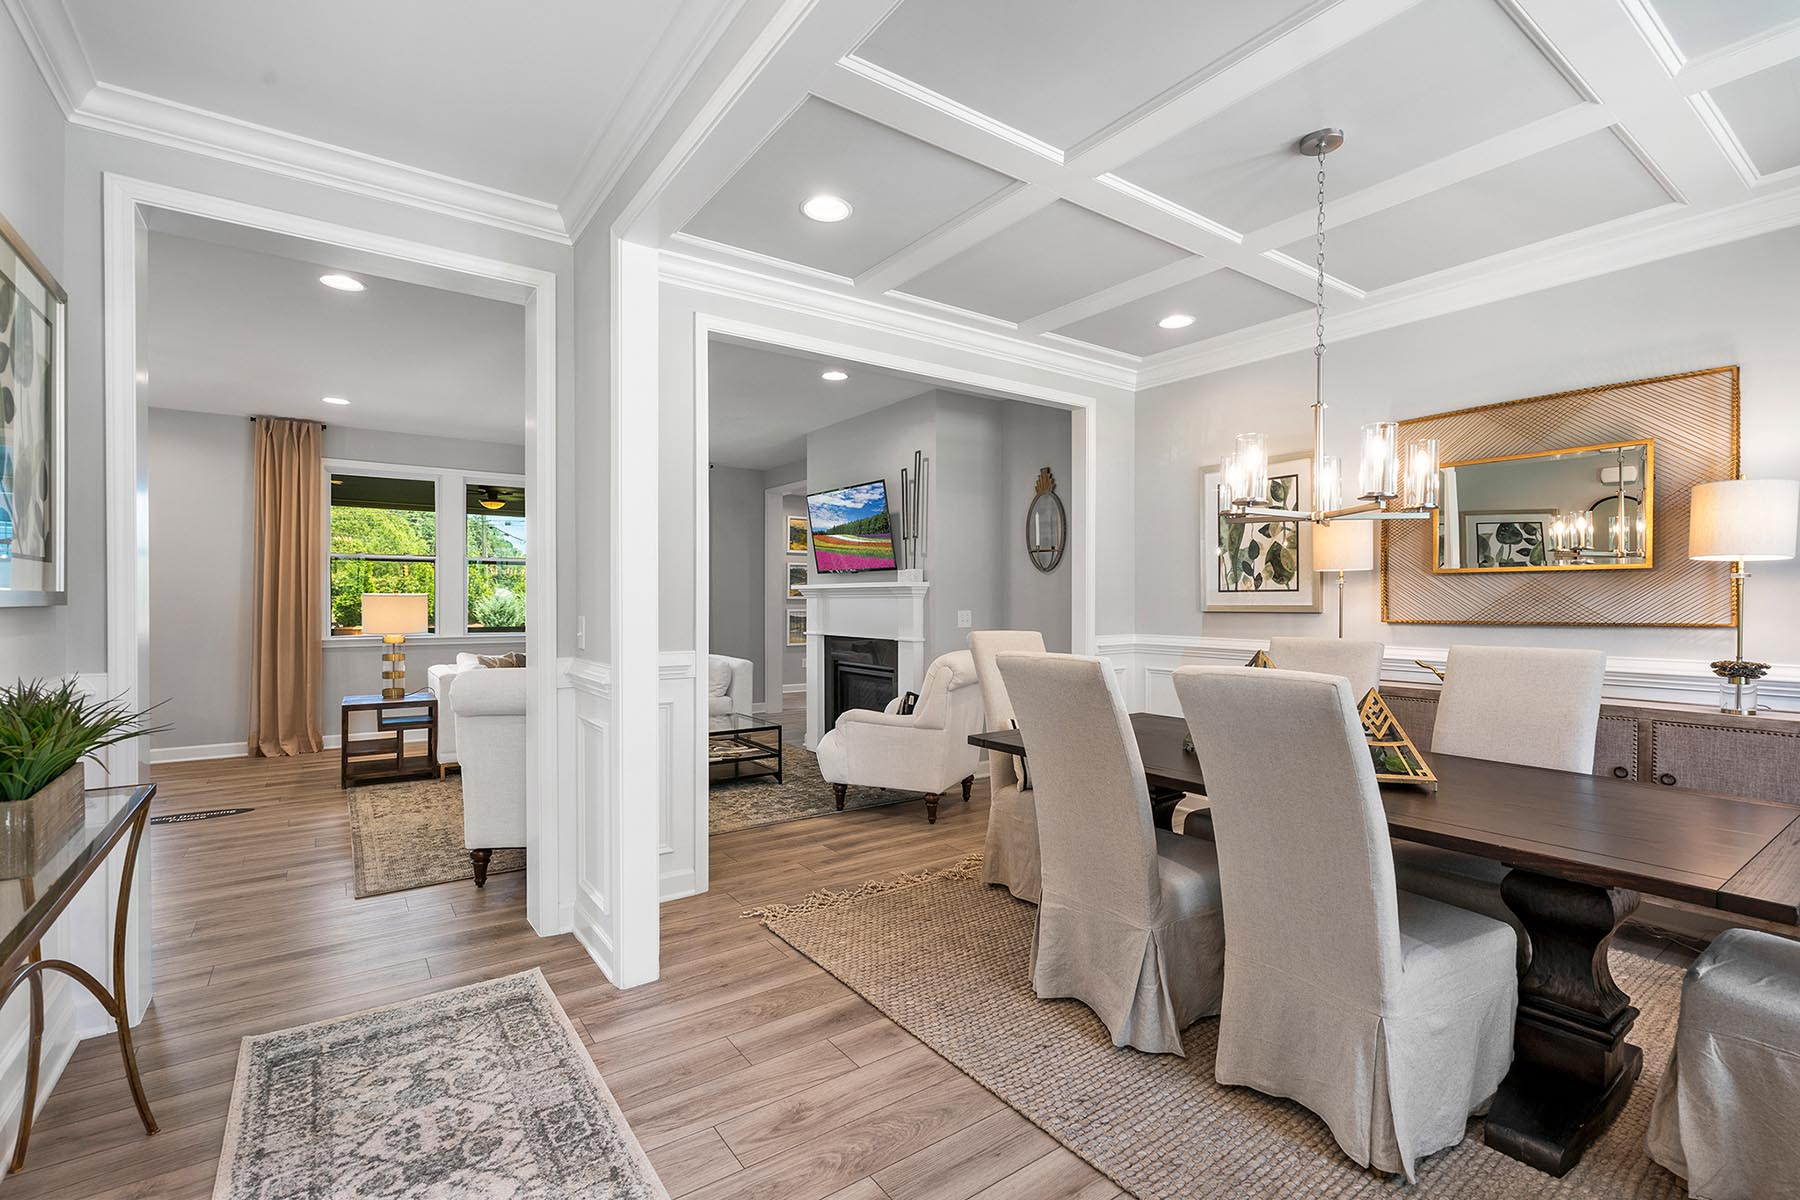 Larkin Plan Dining at Portofino in Clayton North Carolina by Mattamy Homes